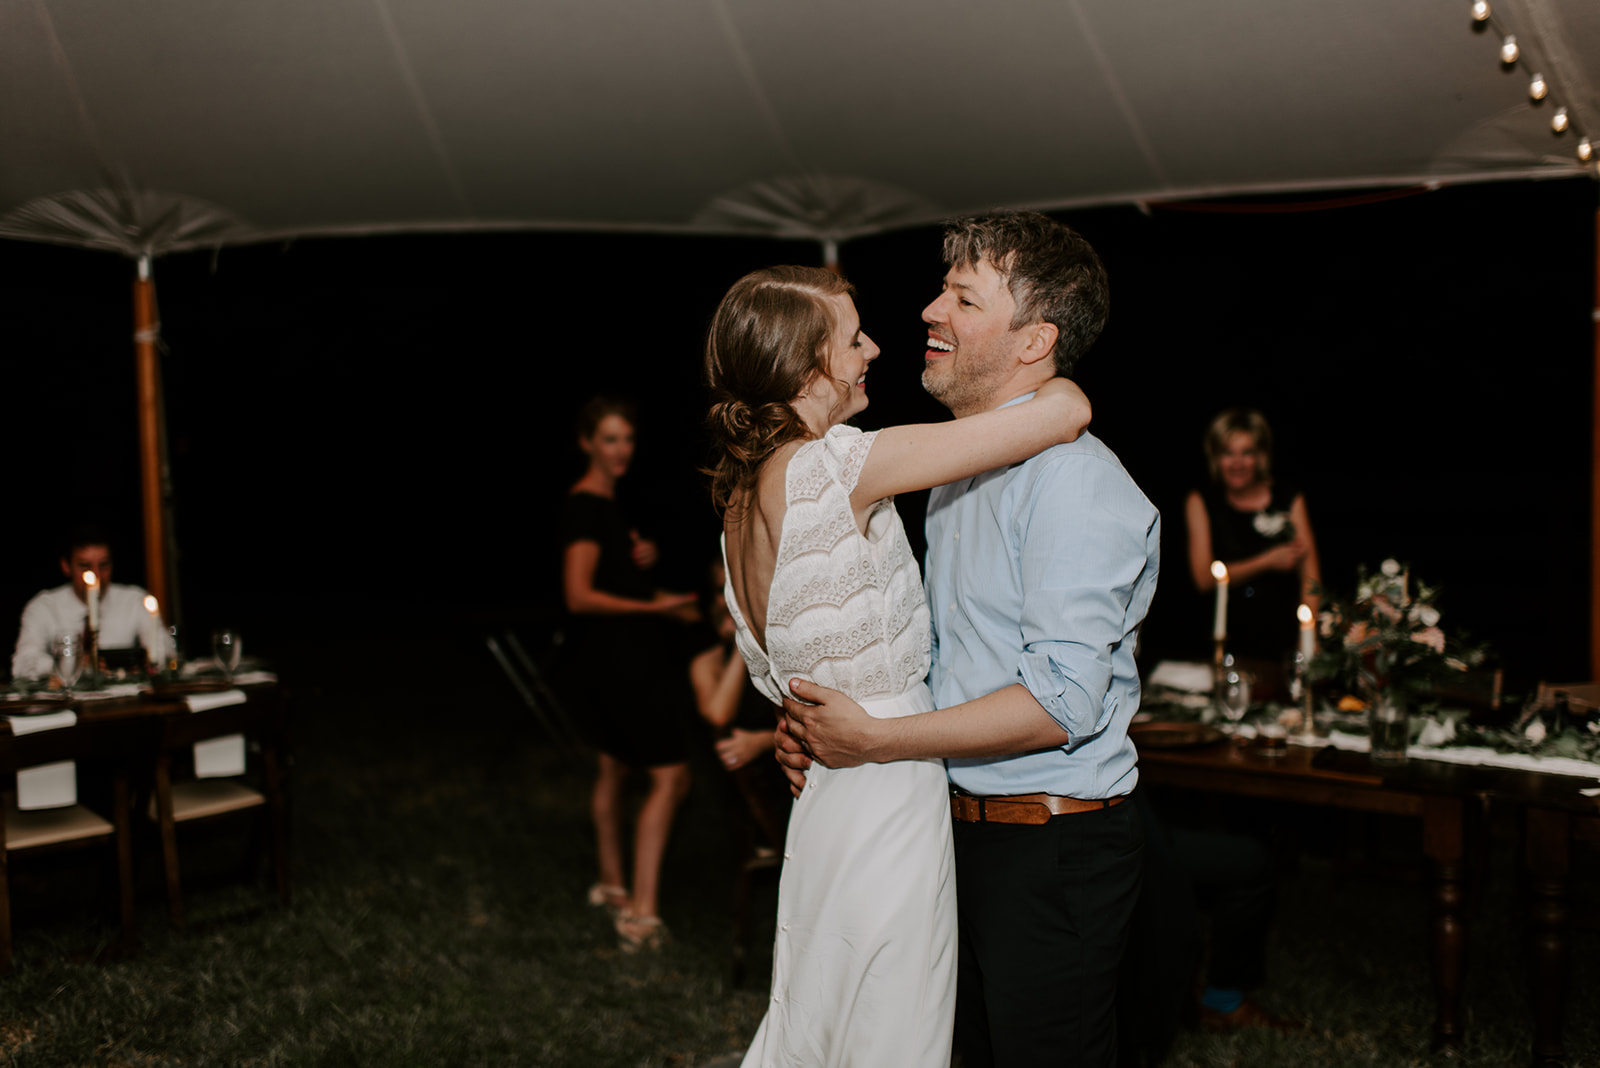 Wedding dancing captured by Savannah Ashley Photography